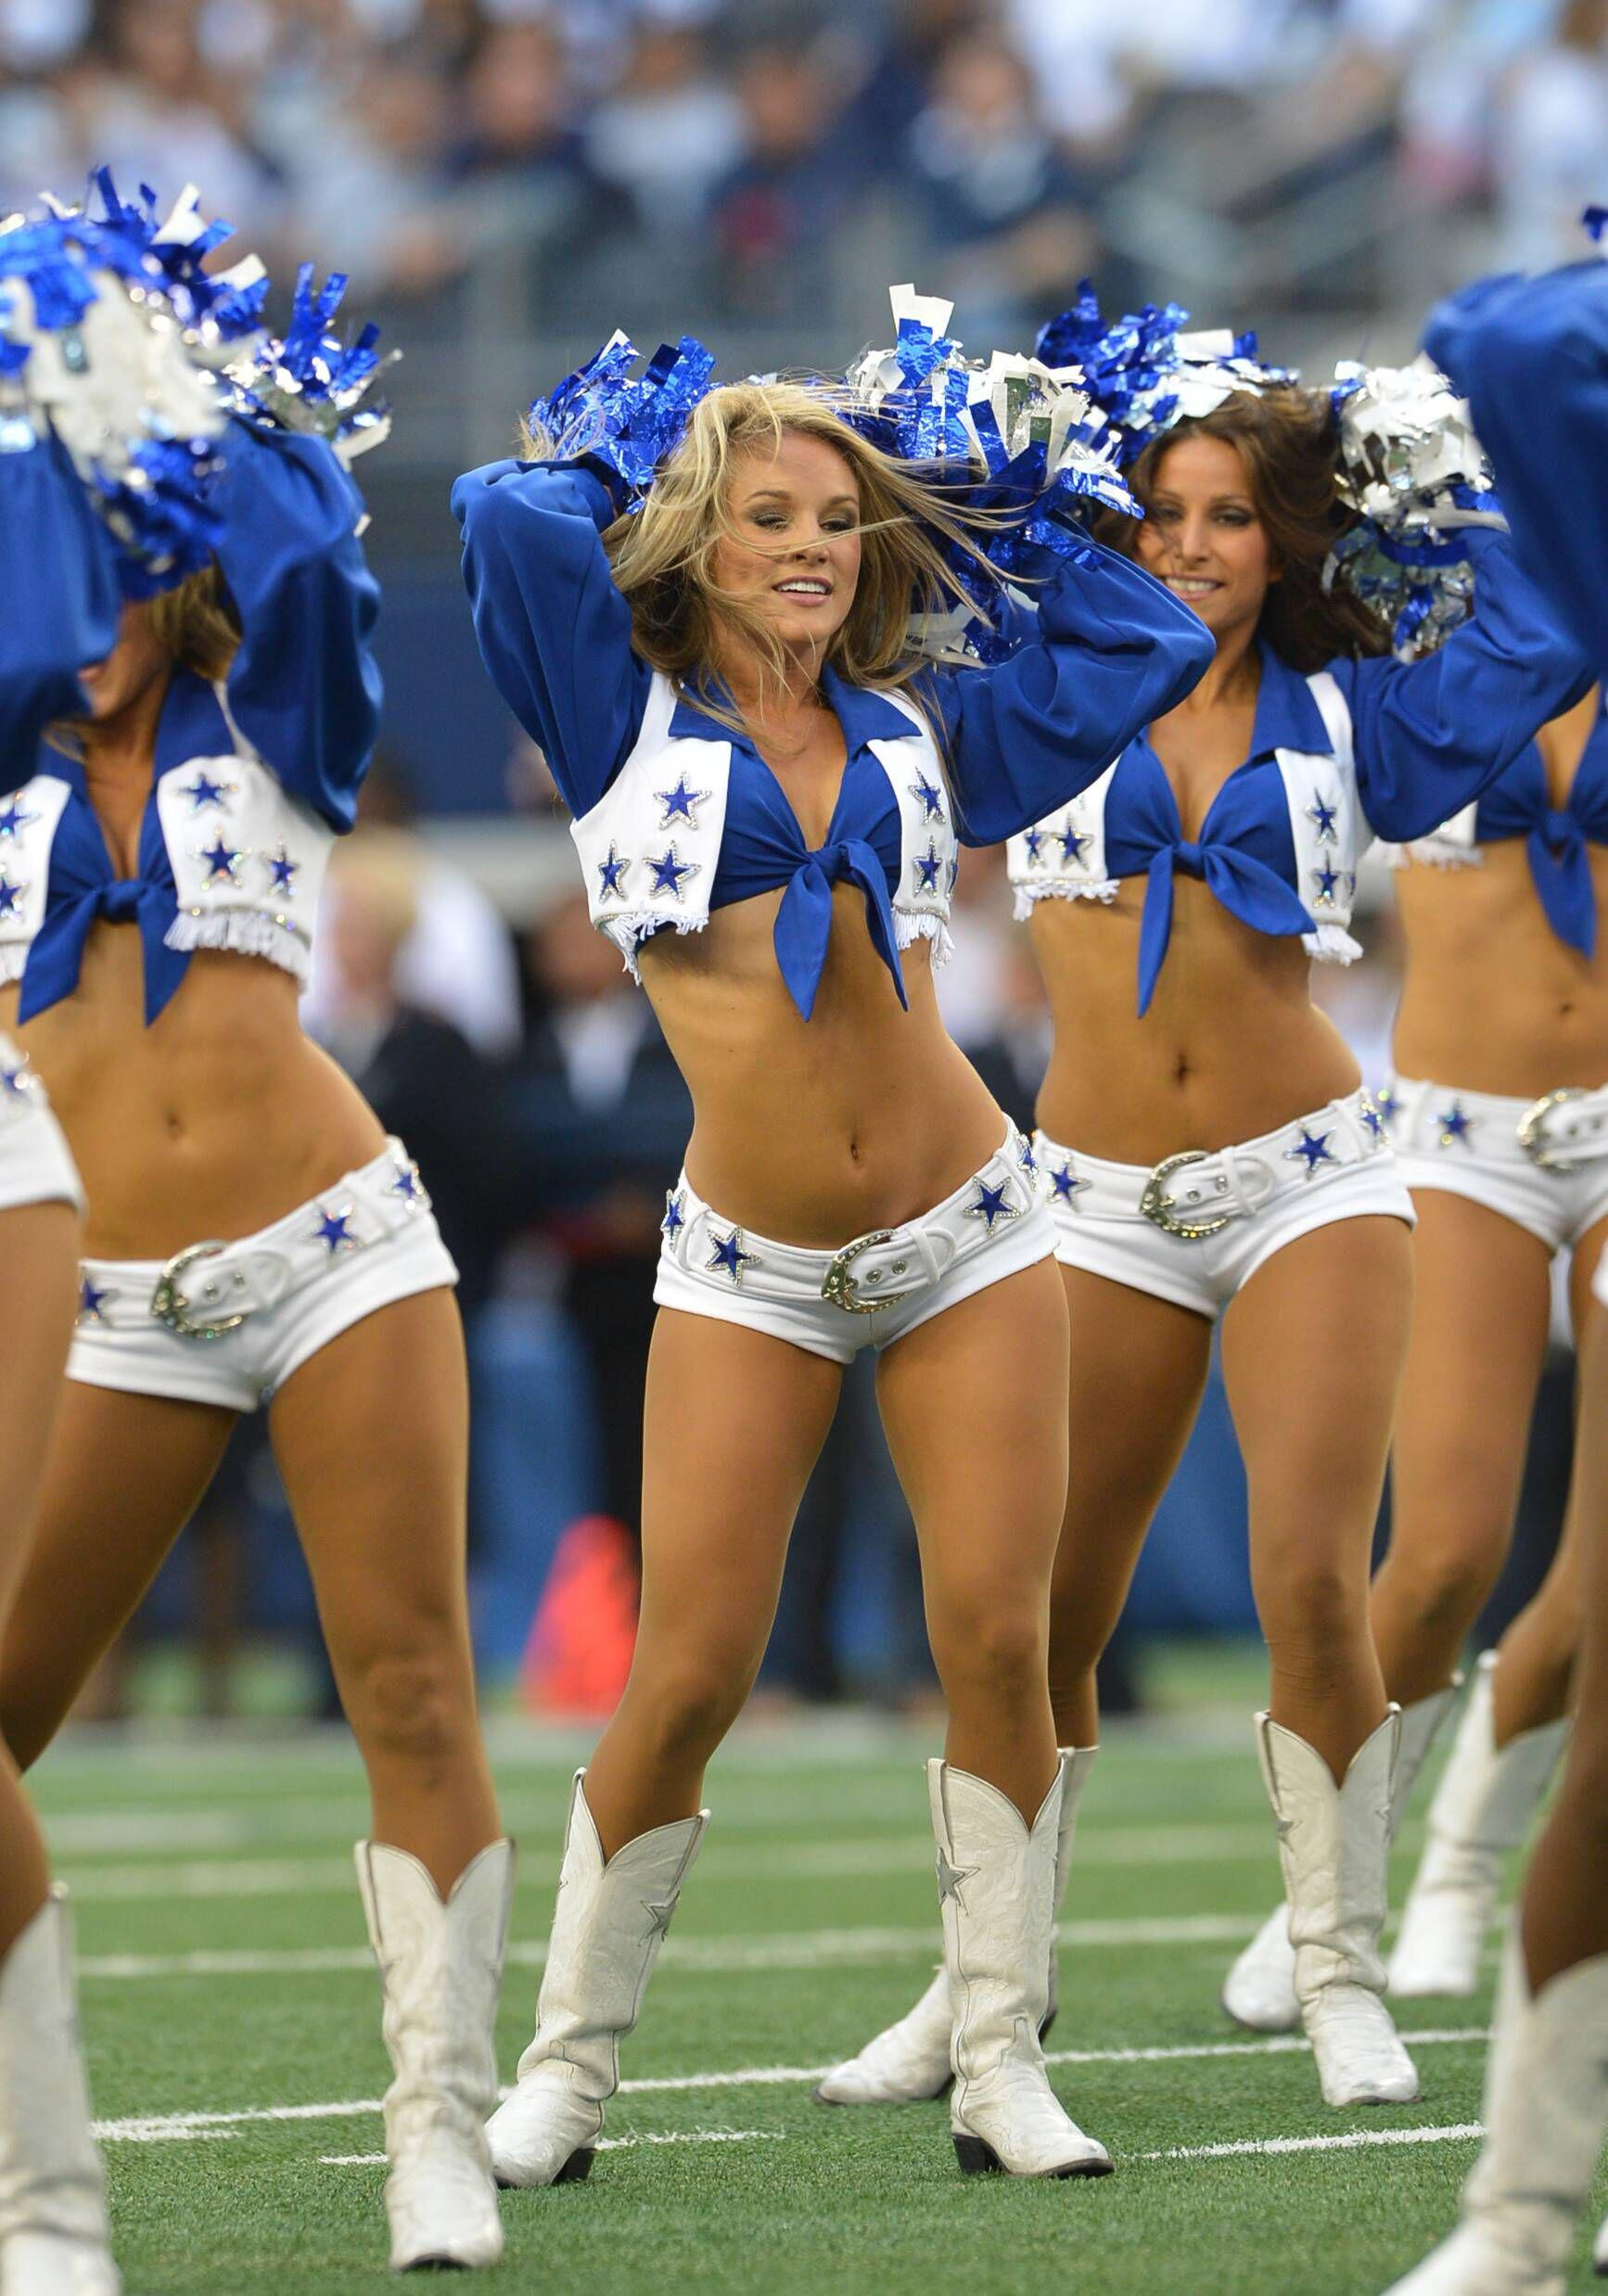 Bild zu Dallas Cowboys, Cheerleader, NFL